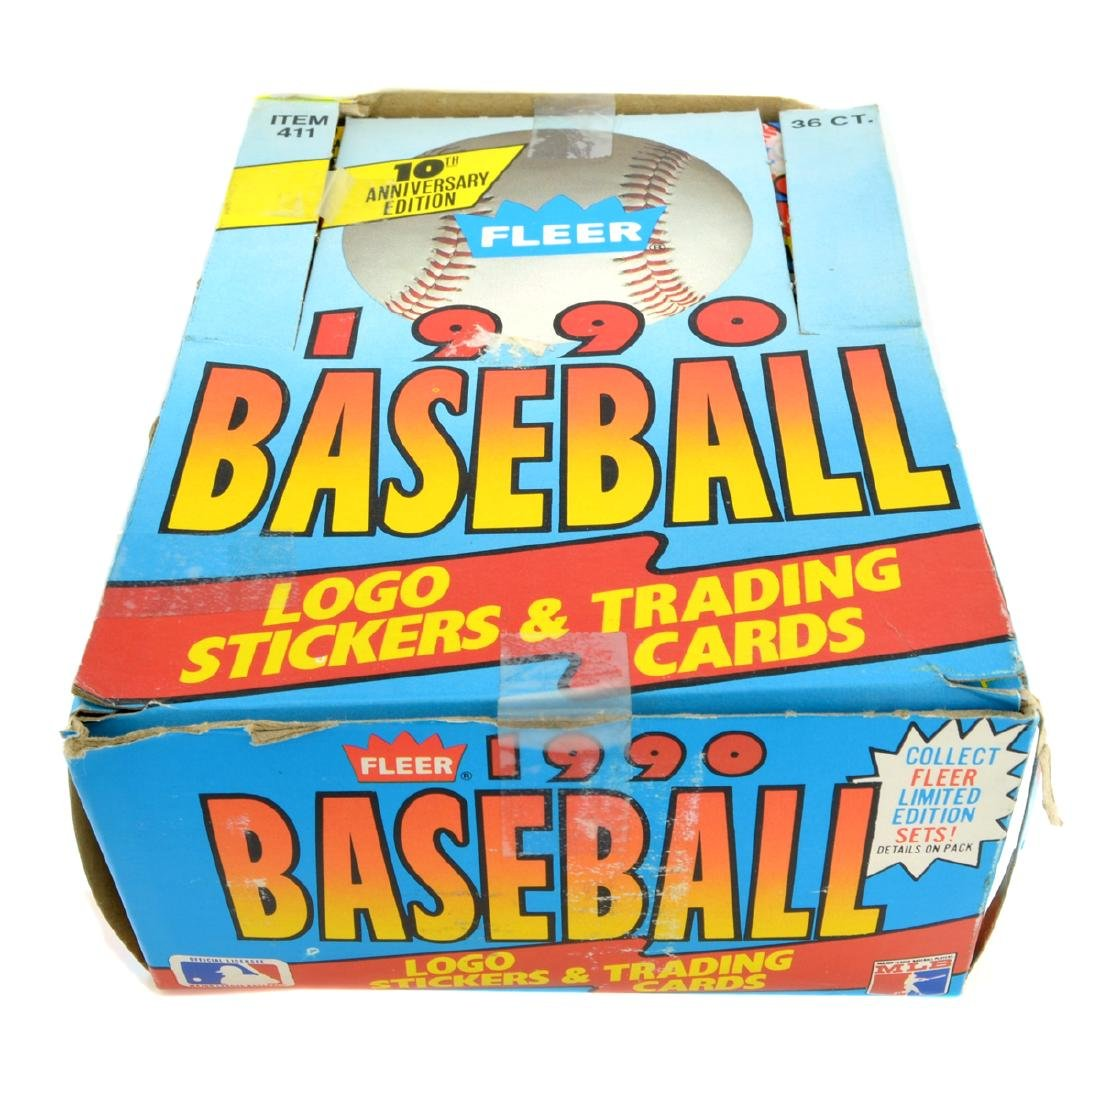 Limited Edition 1990 Fleer Baseball Card Set